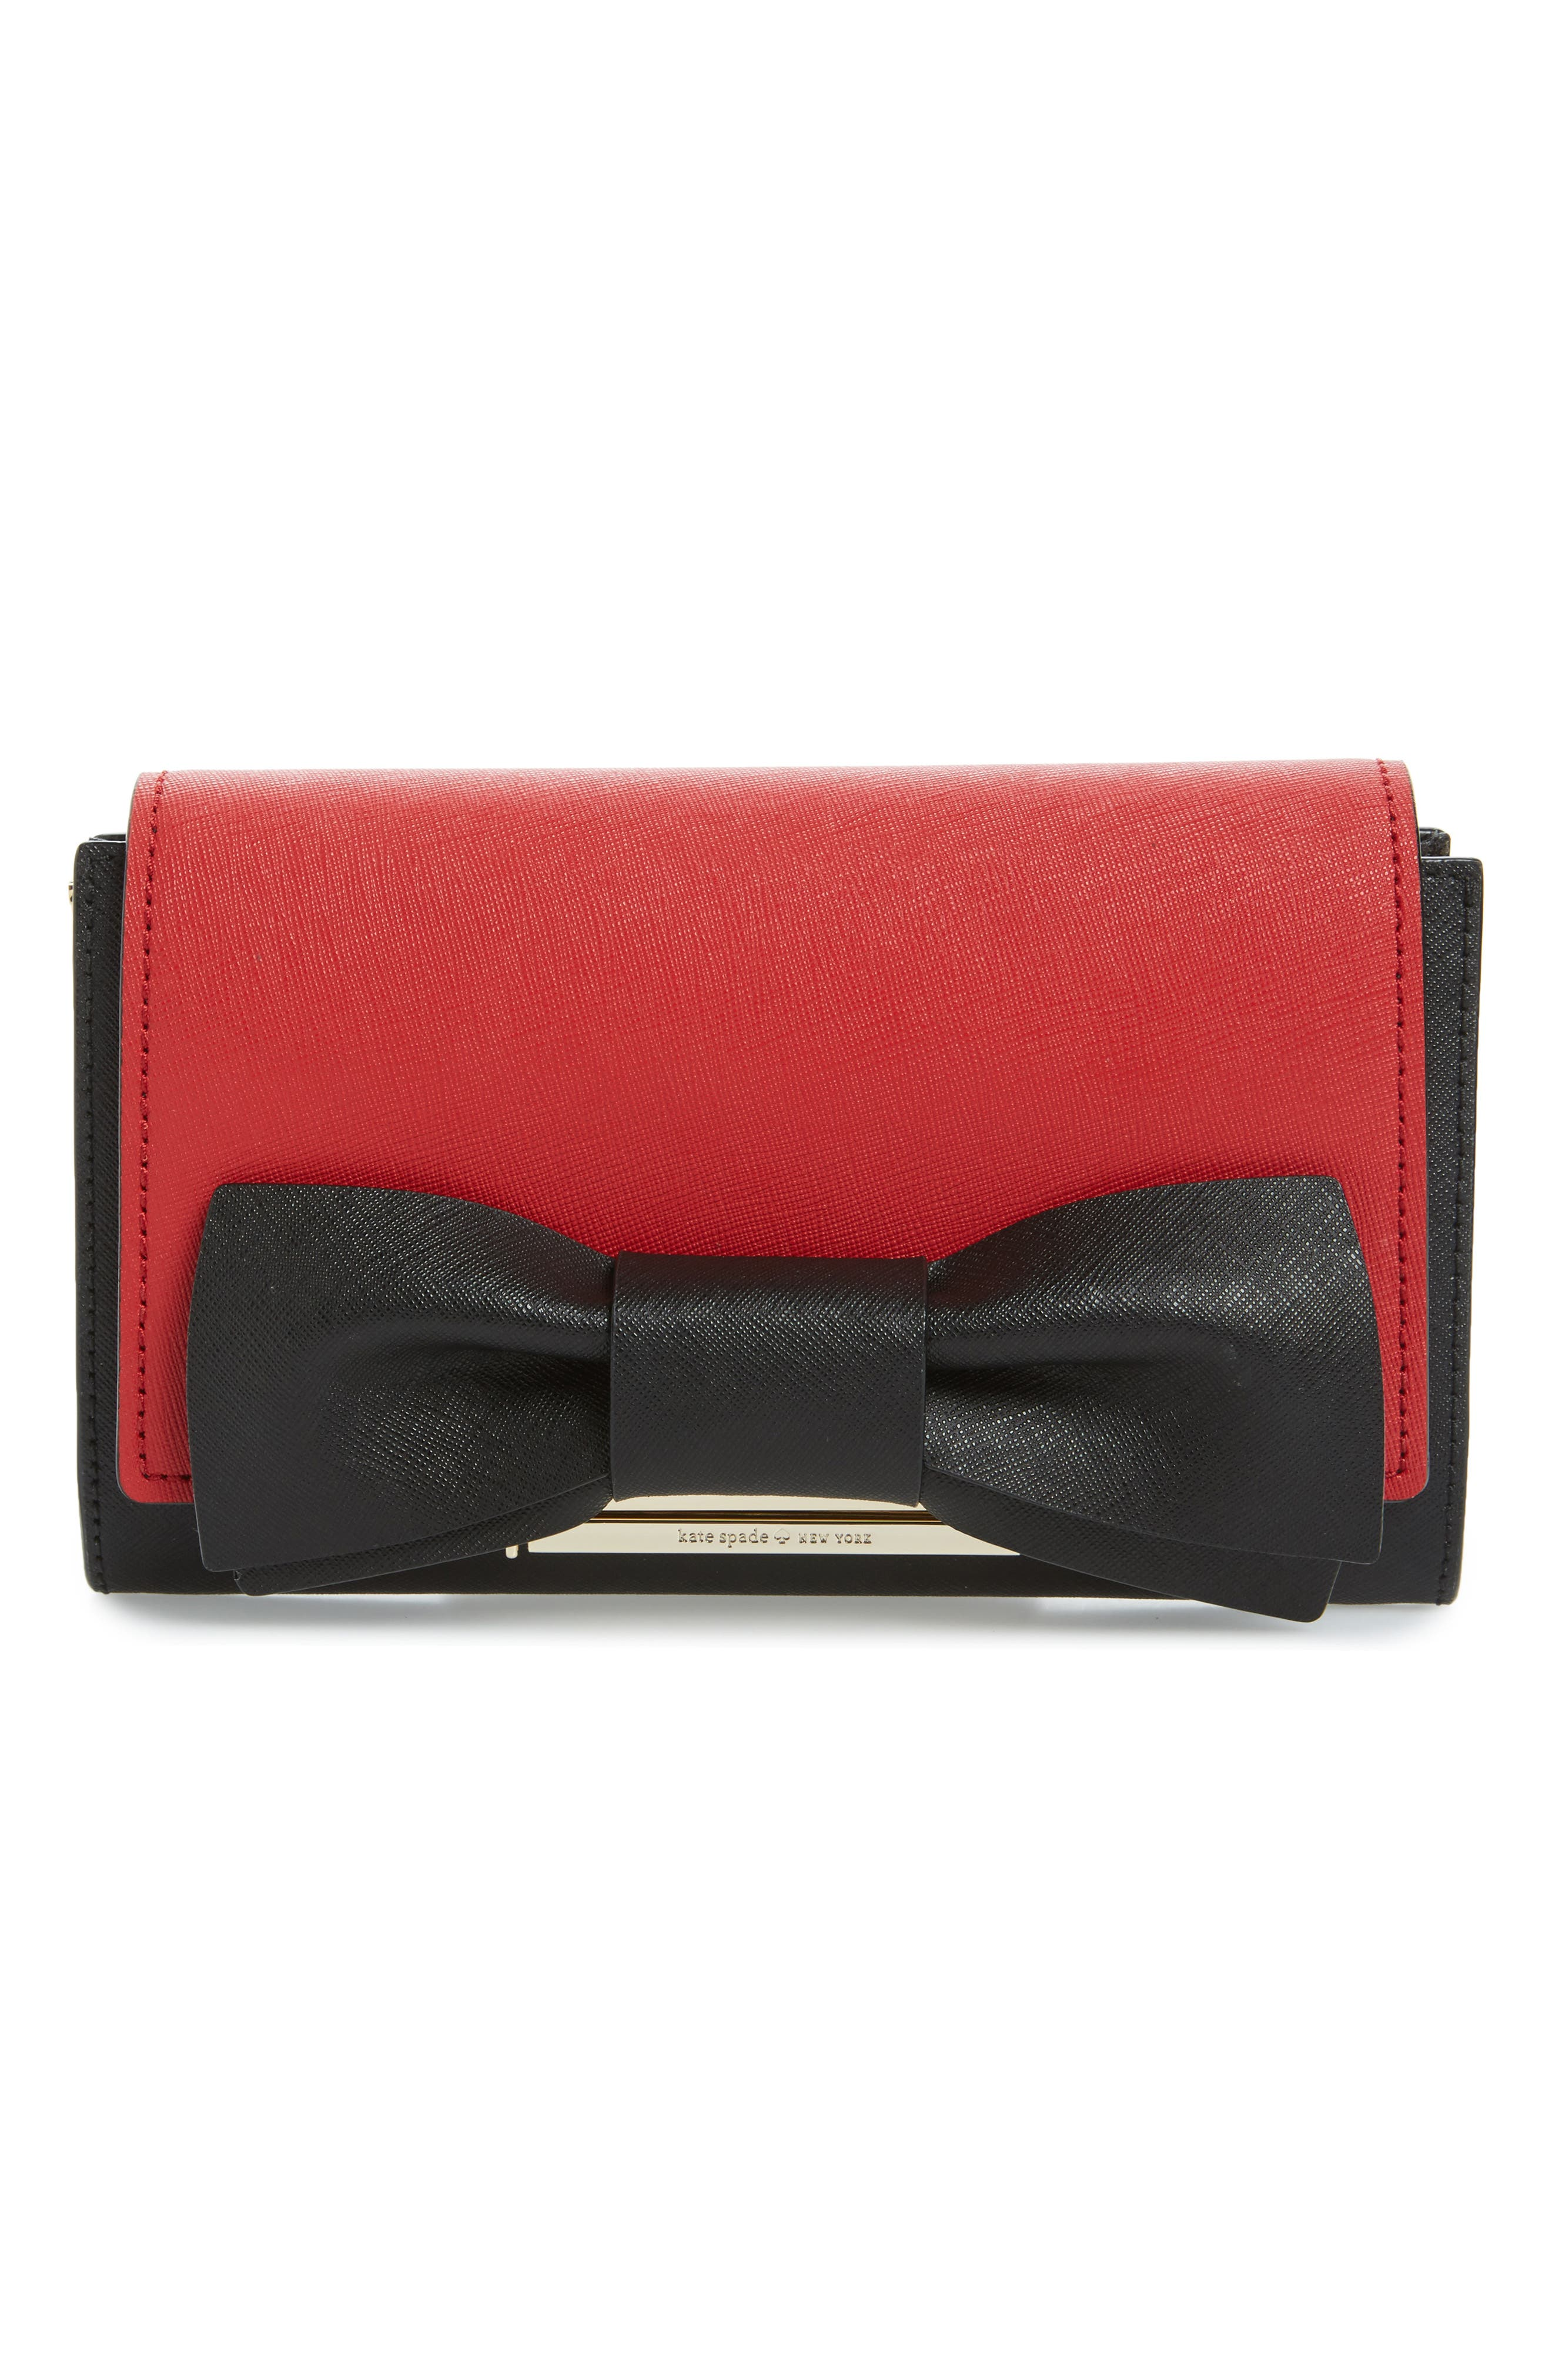 make it mine leather bow snap-on accent flap,                             Alternate thumbnail 2, color,                             640